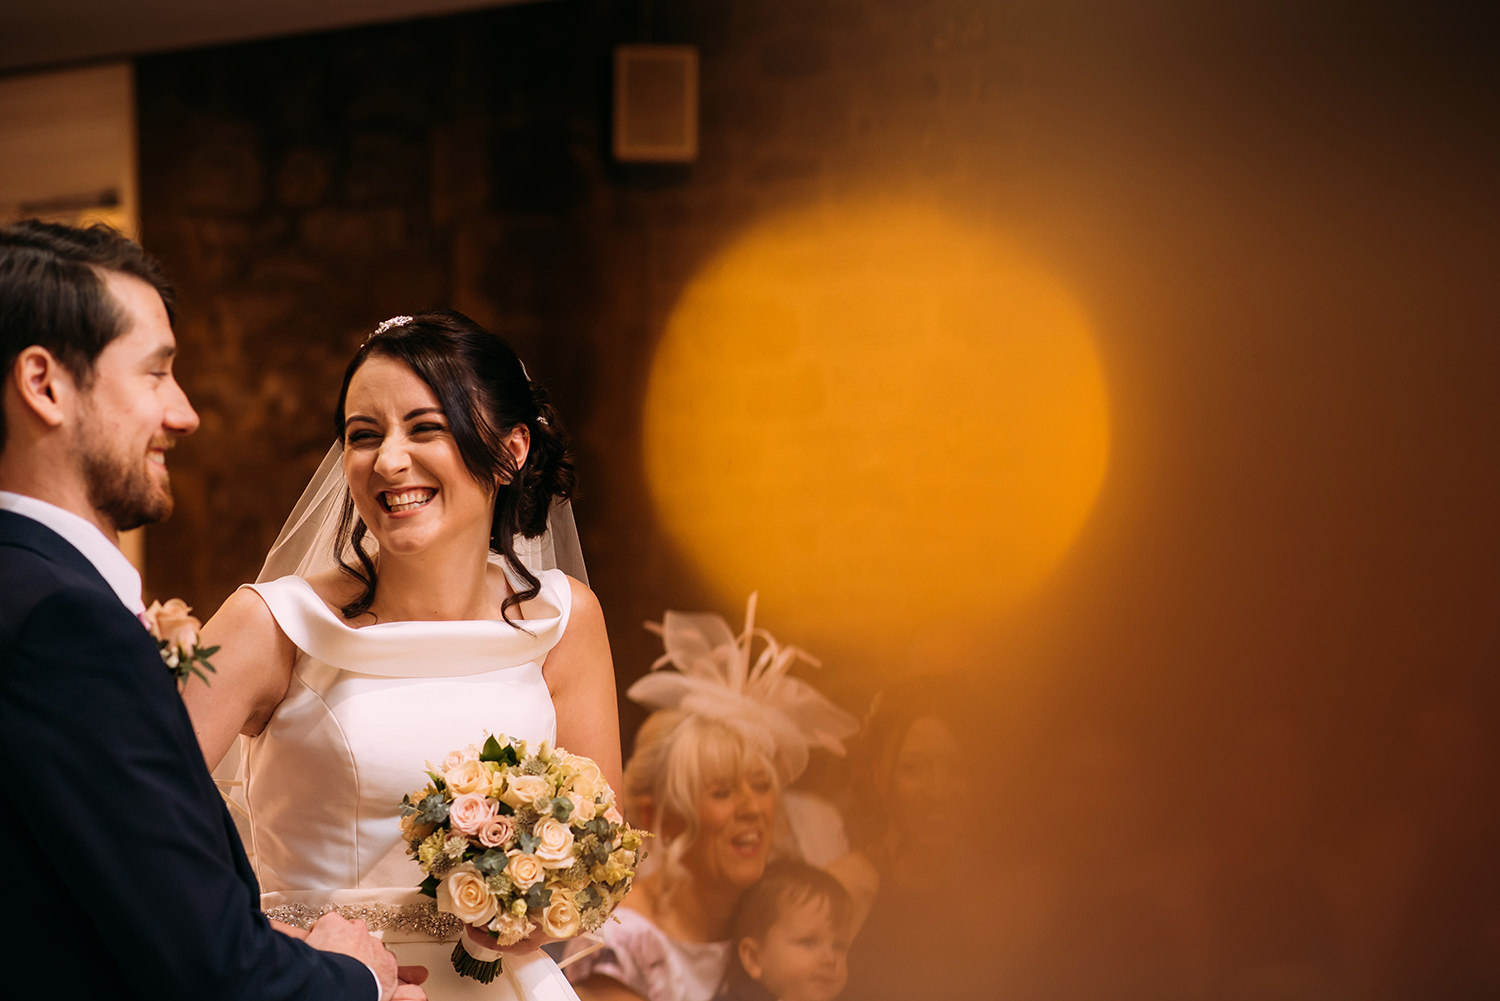 bride and groom in service, with orange bokeh